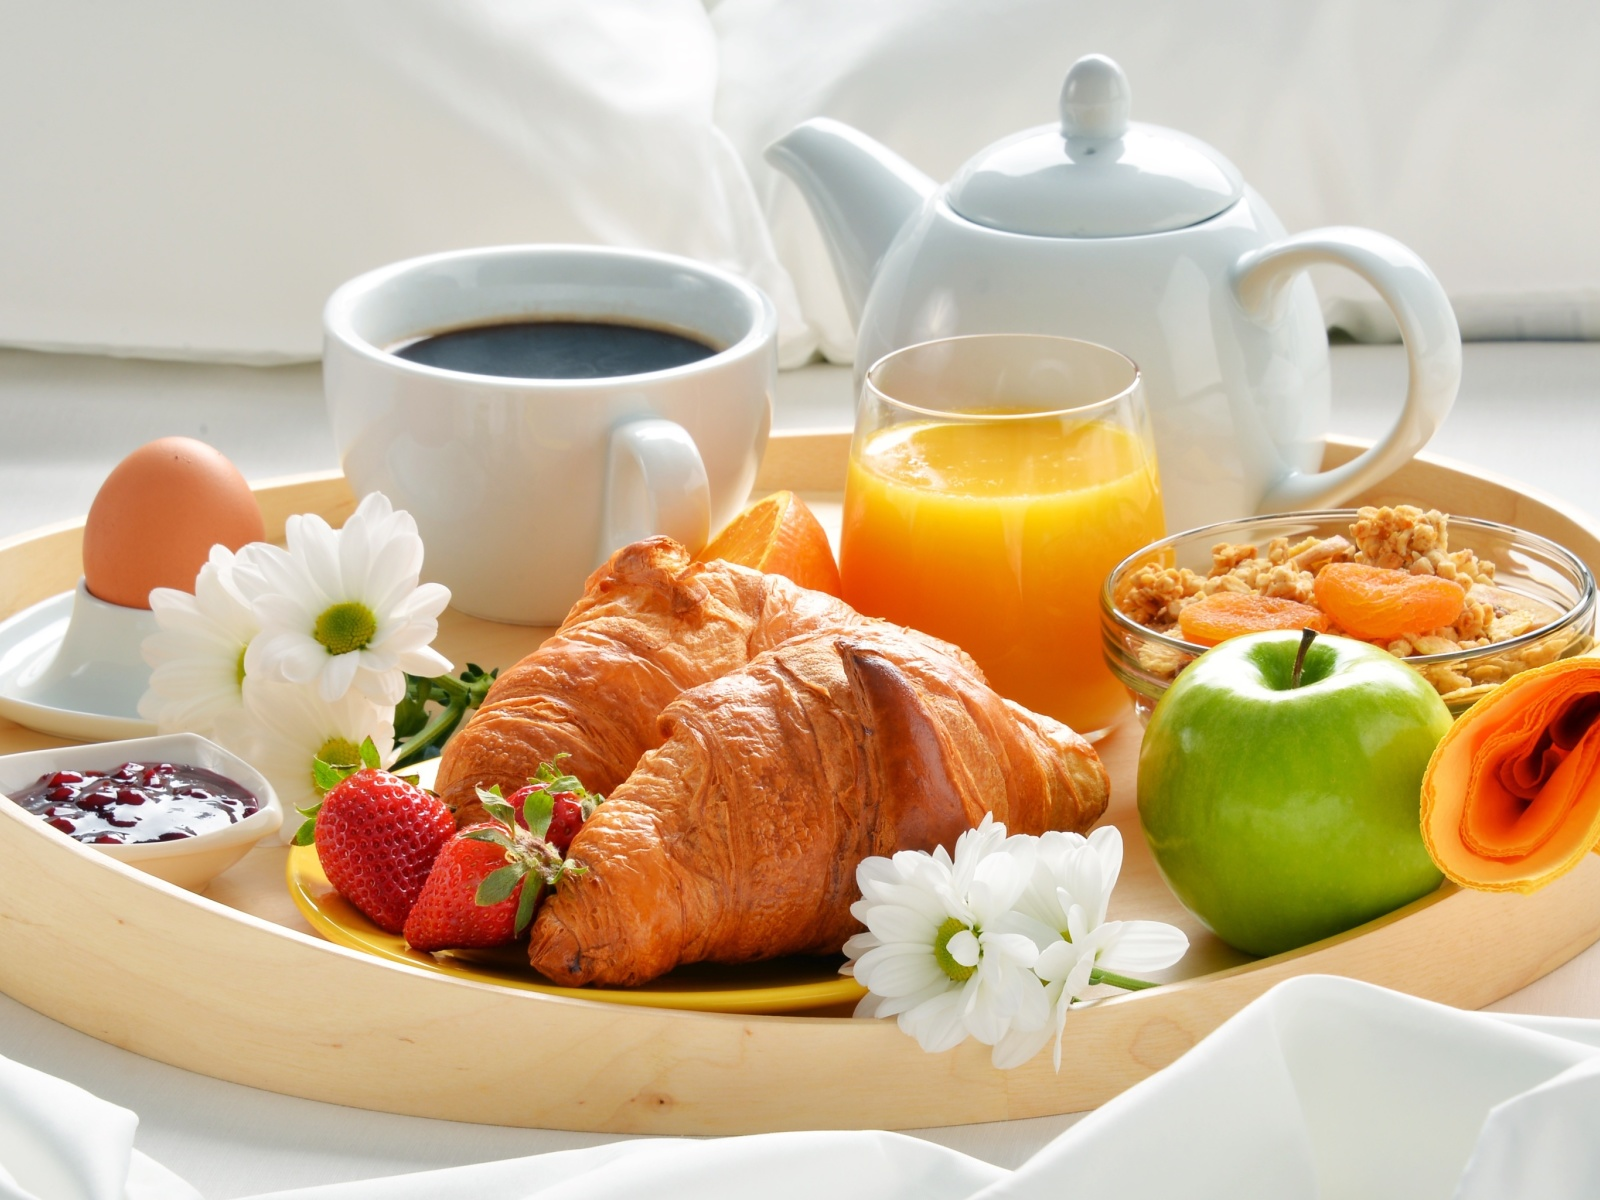 Breakfast with croissant and musli screenshot #1 1600x1200